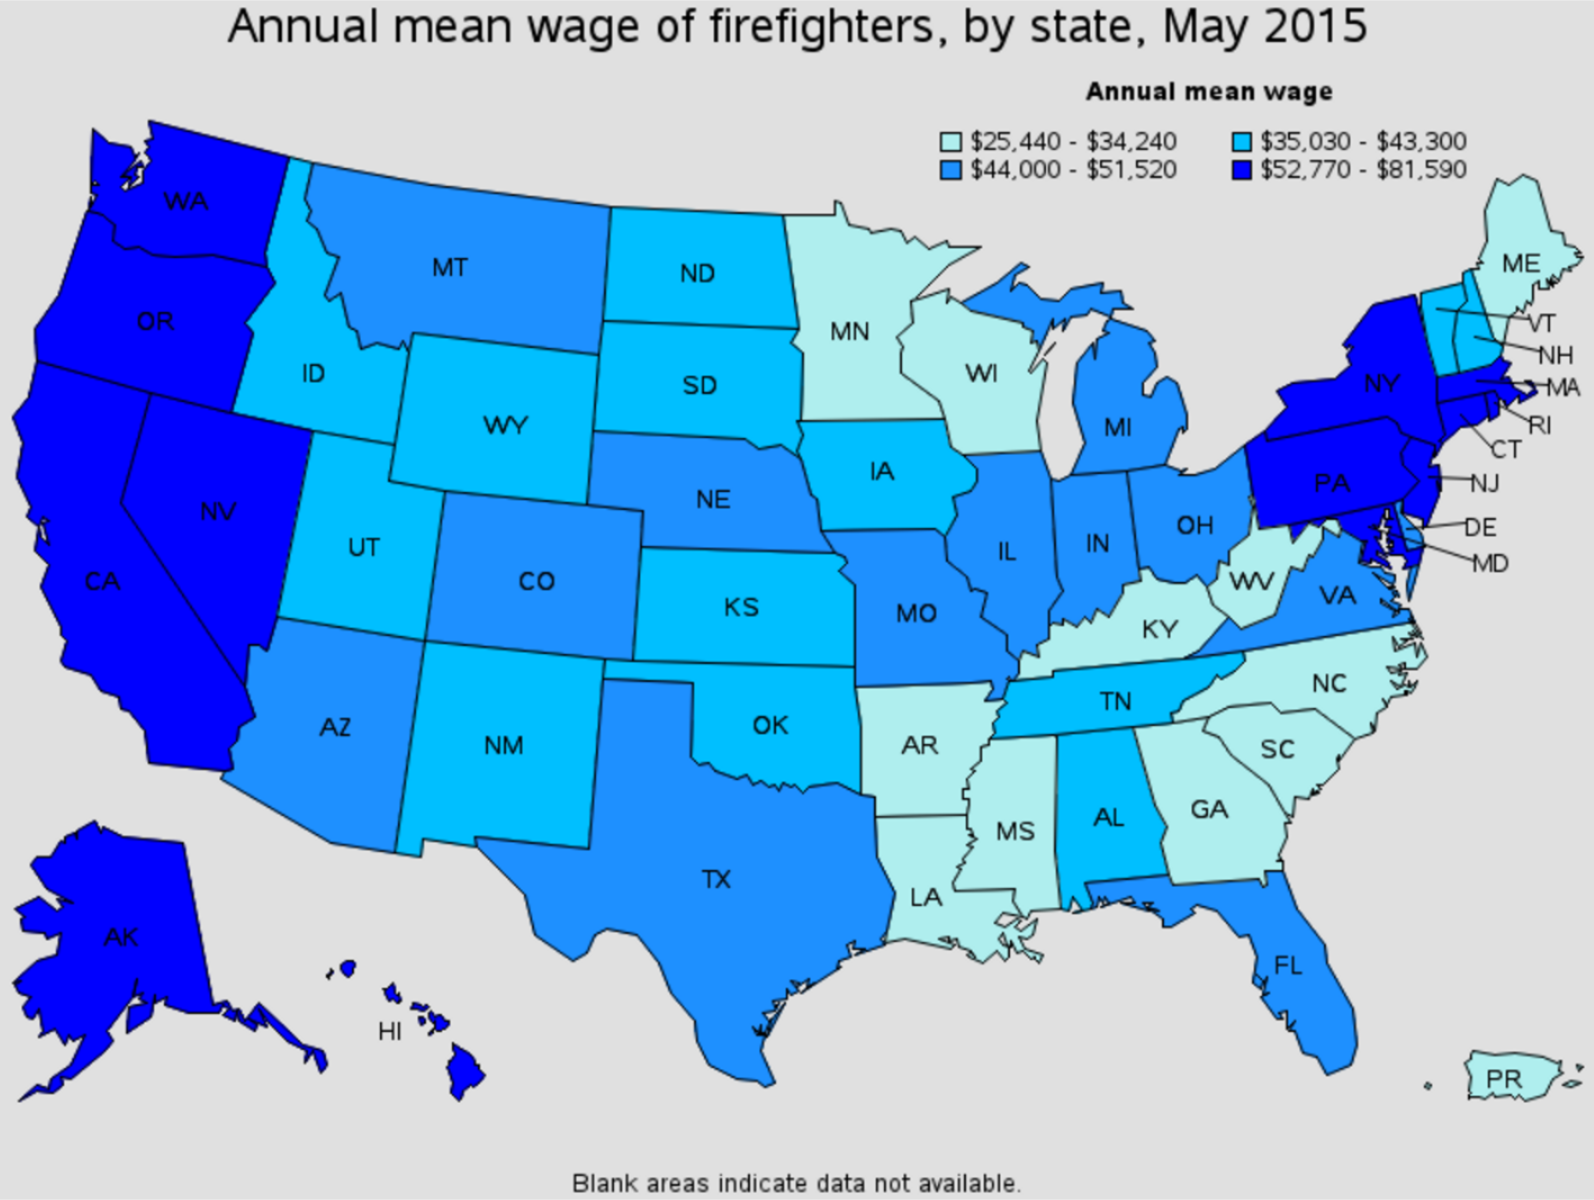 firefighter average salary by state Tulsa Oklahoma